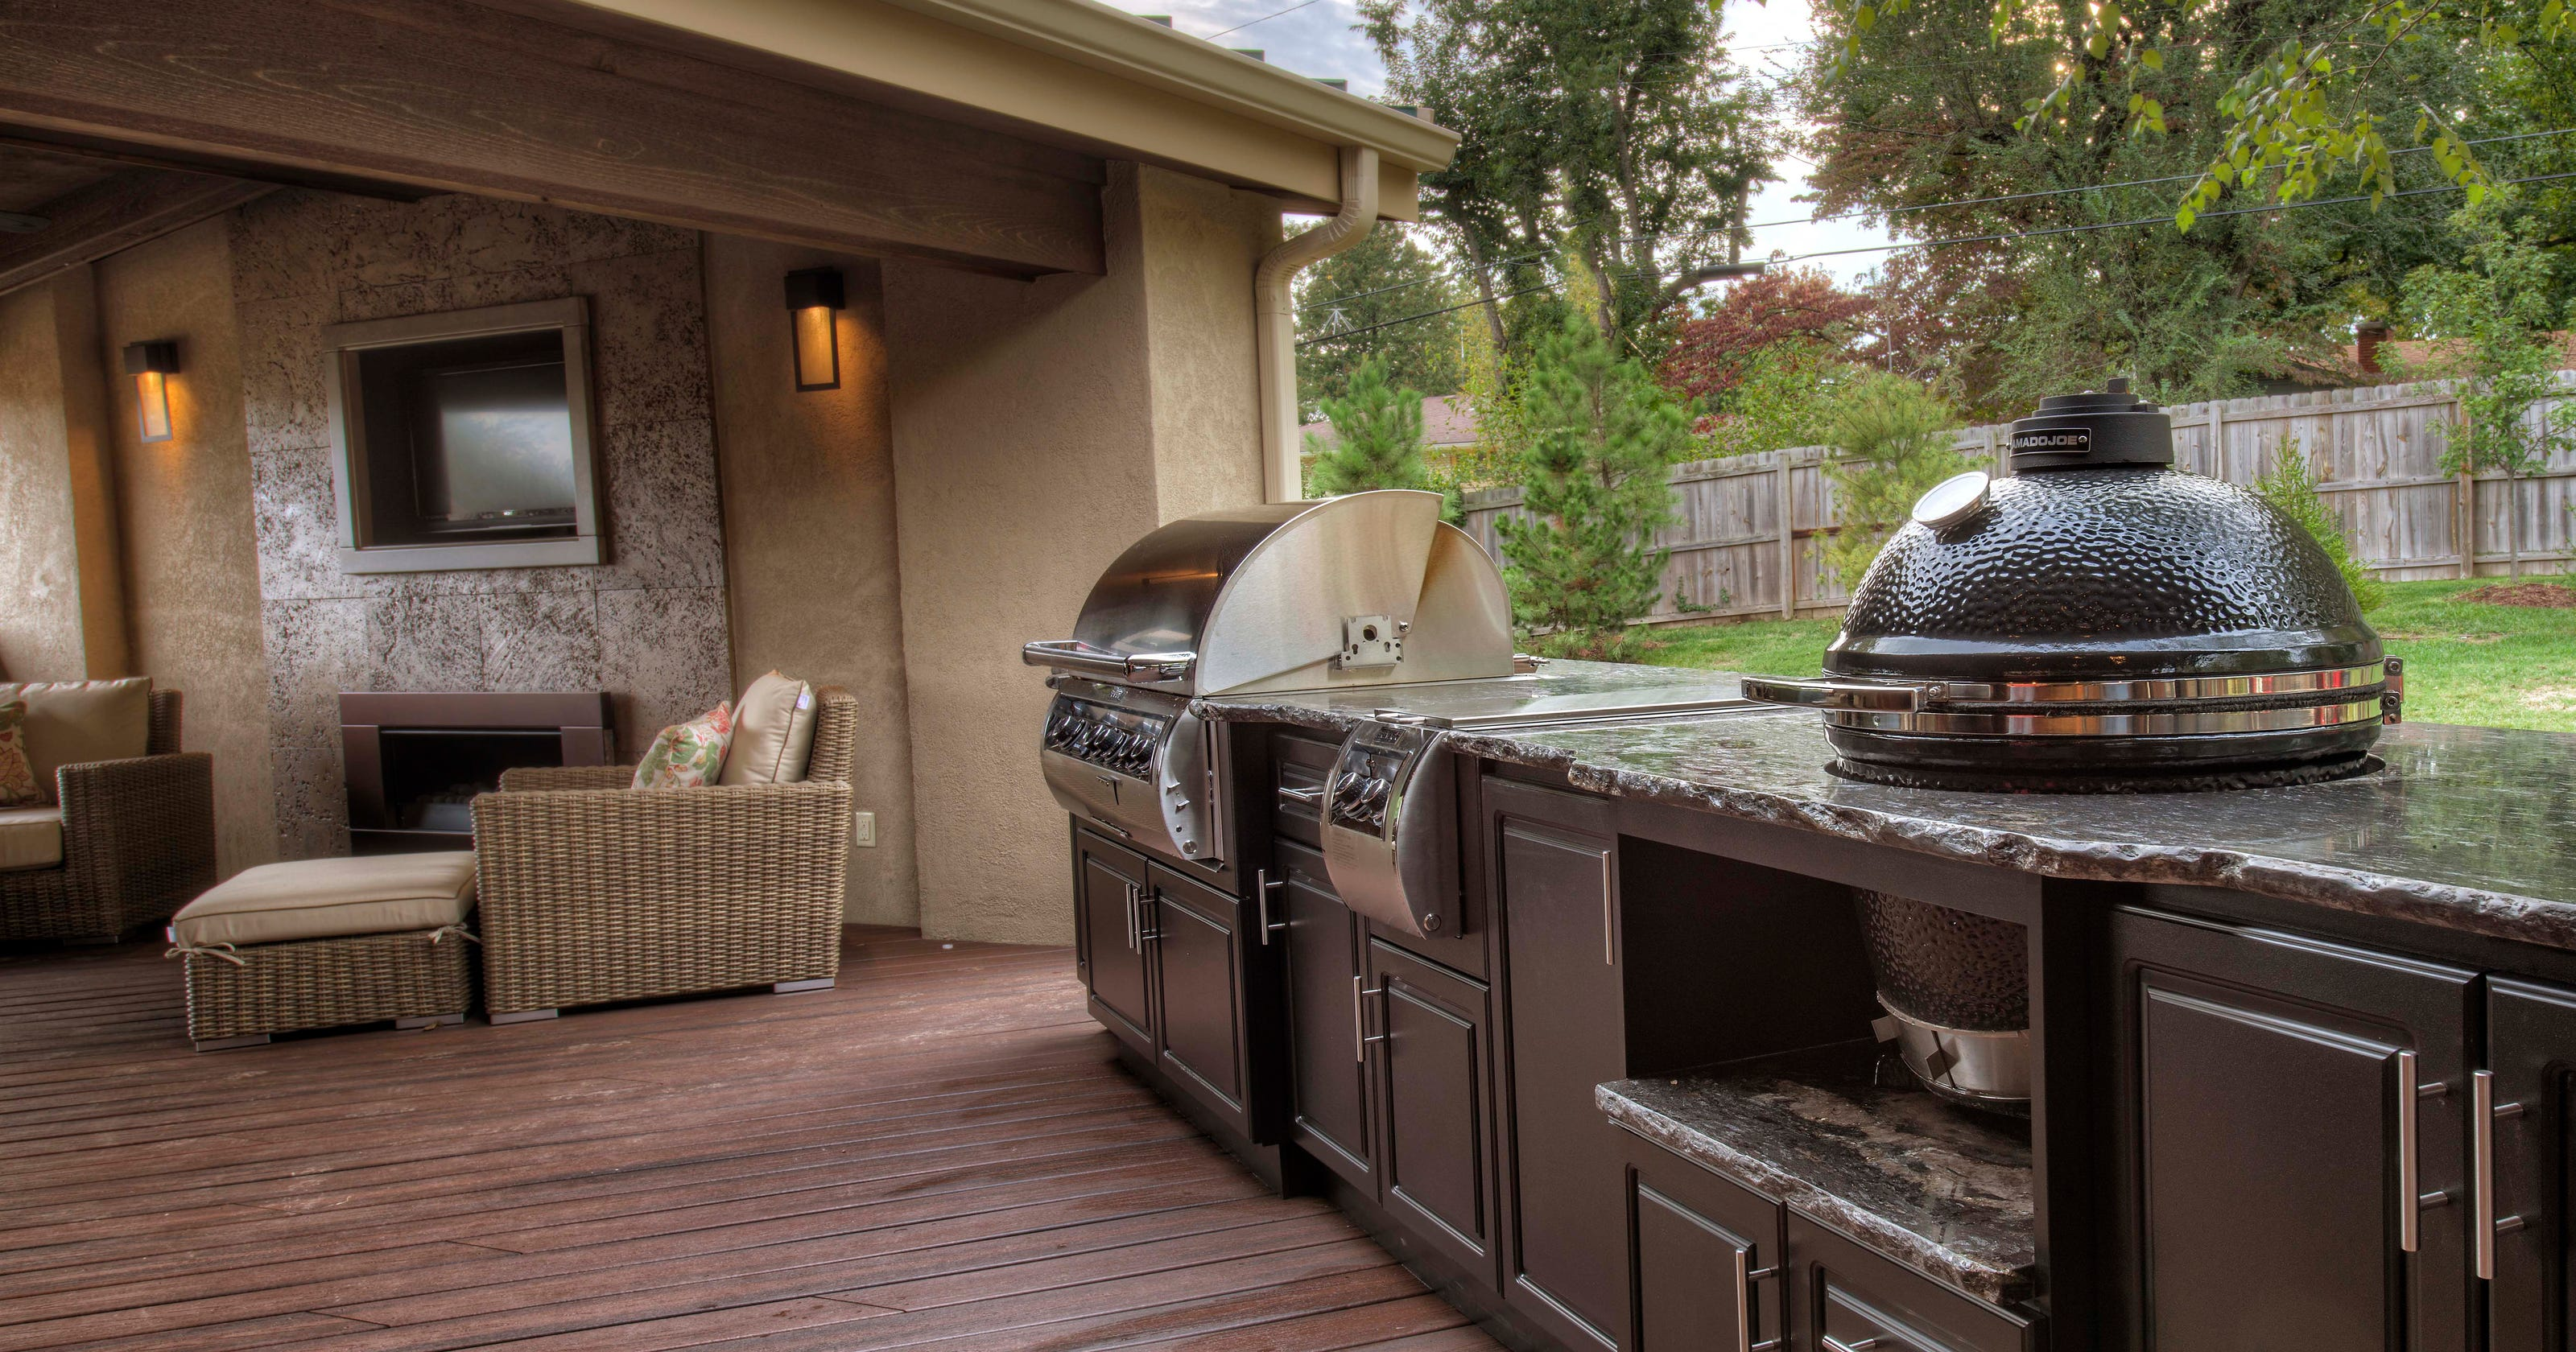 Company Makes Functional Beautiful Outdoor Kitchens